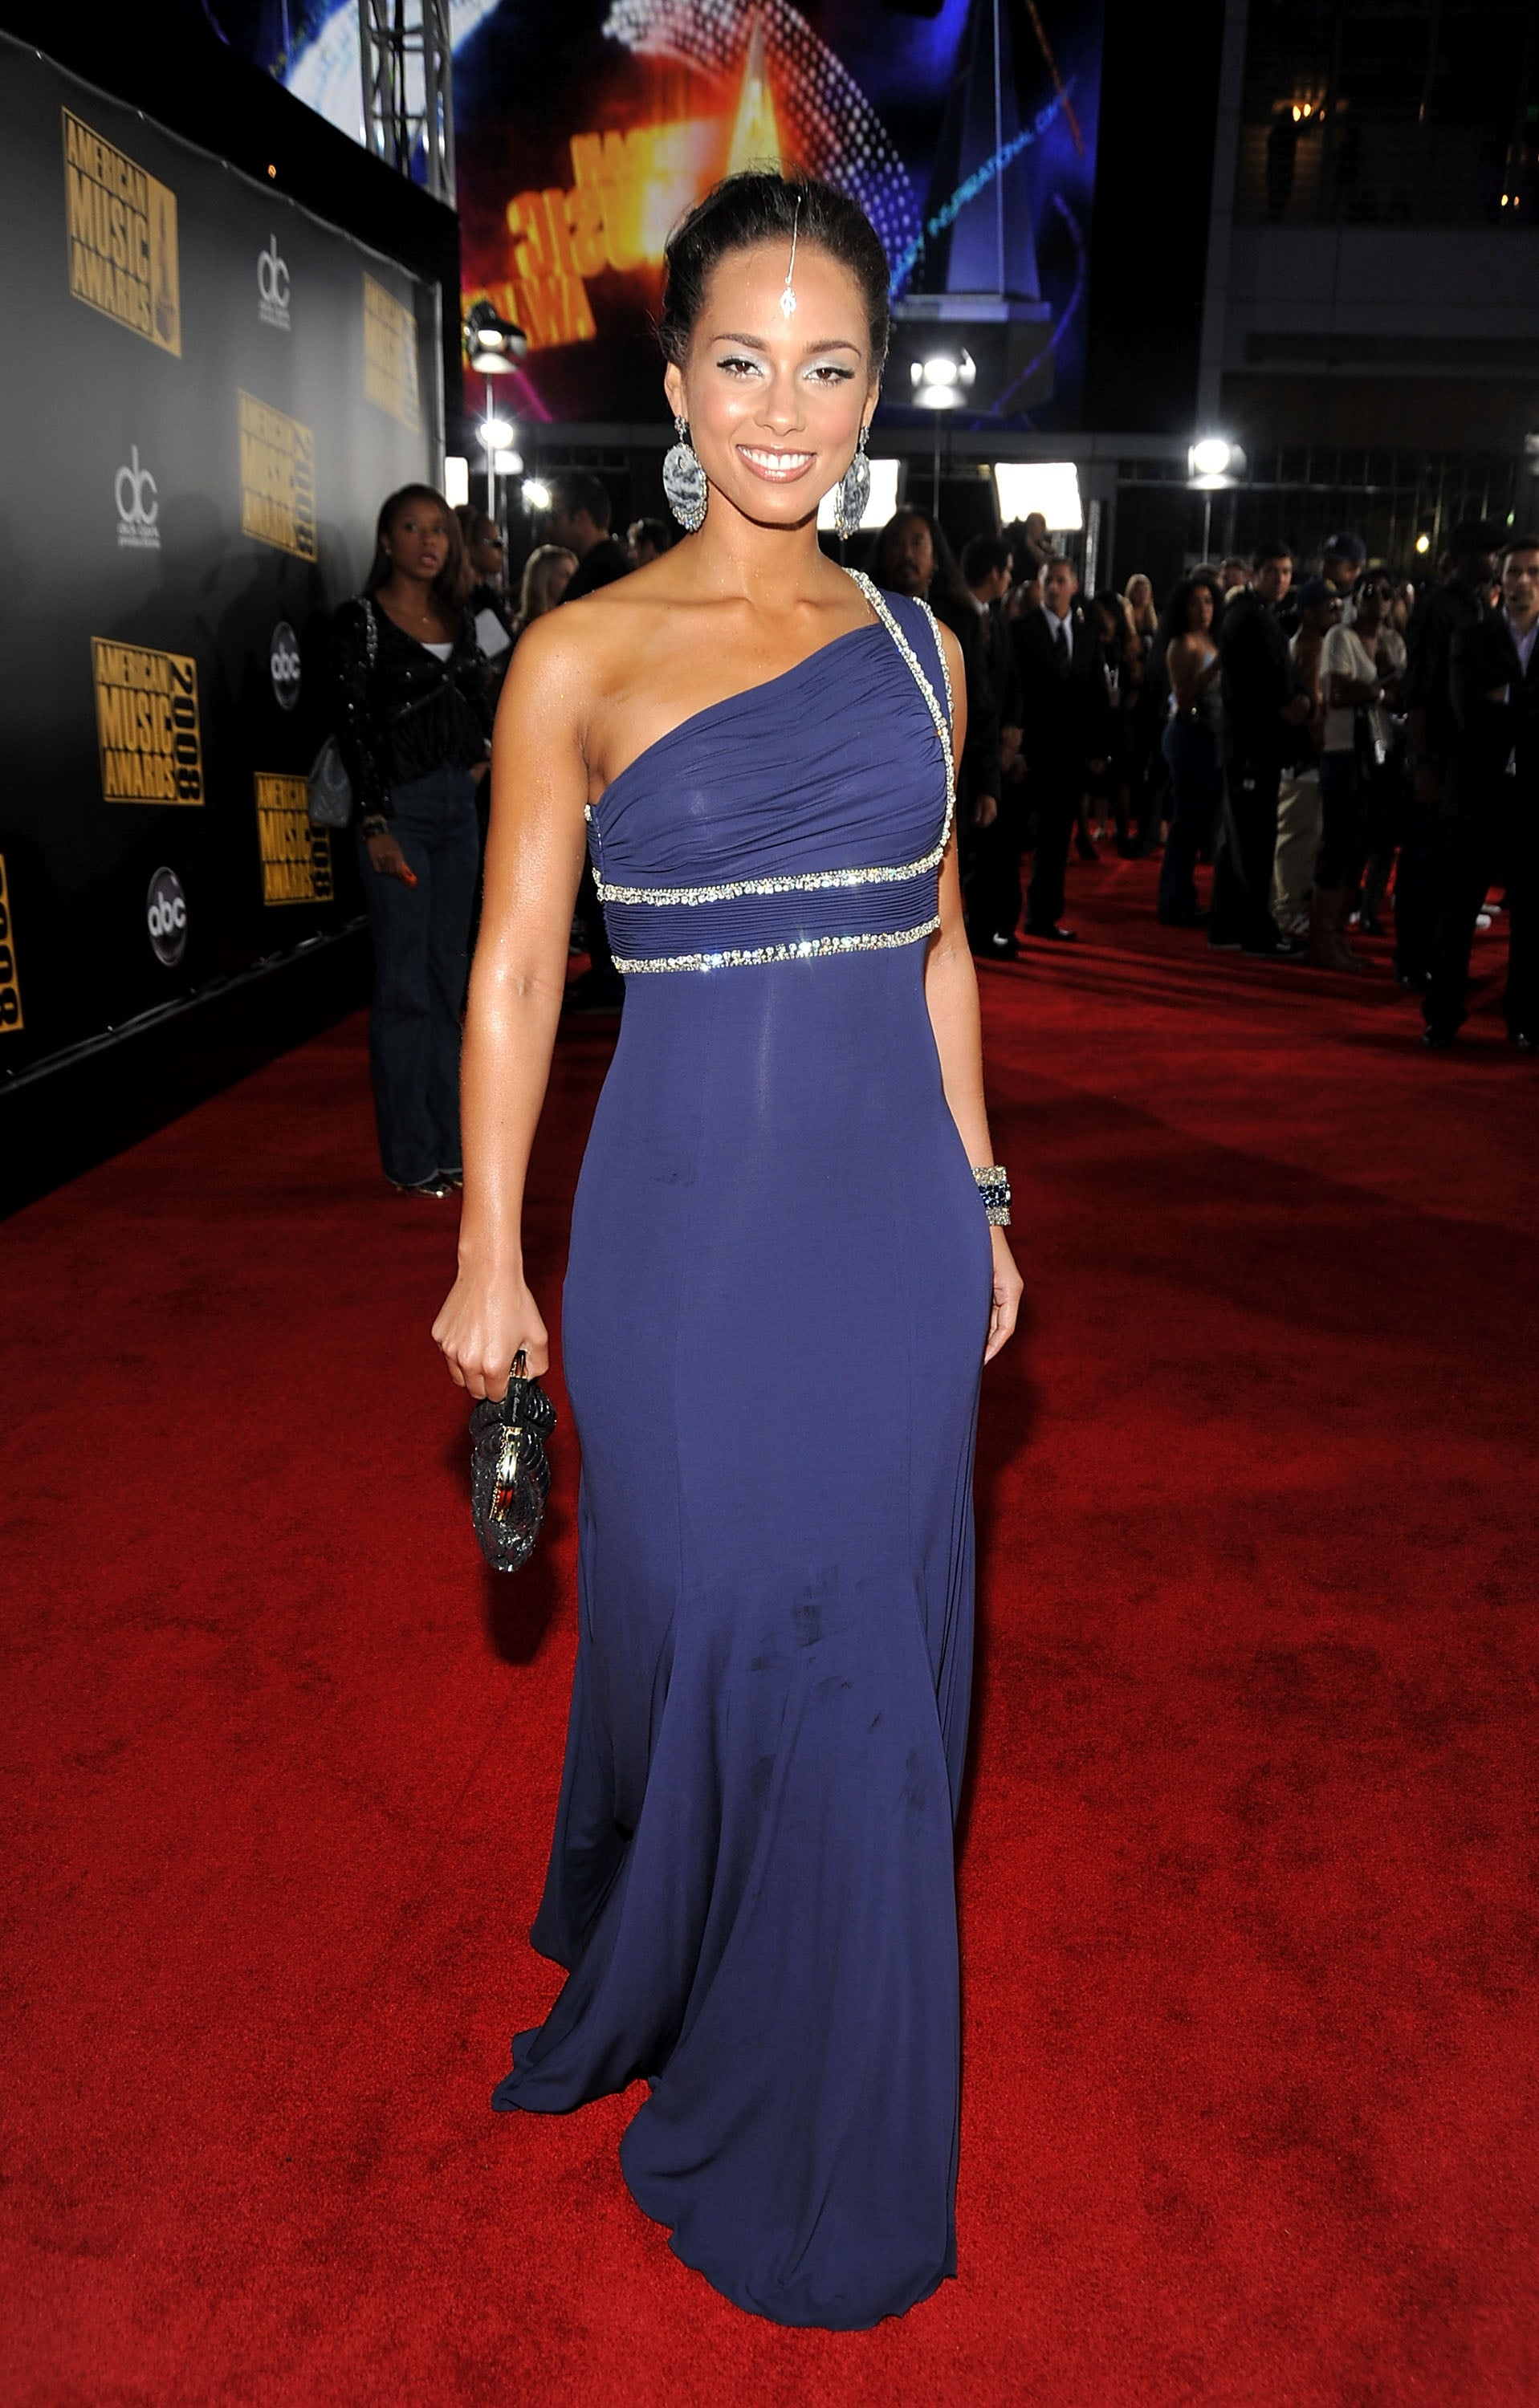 red carpet photos of american music awards including